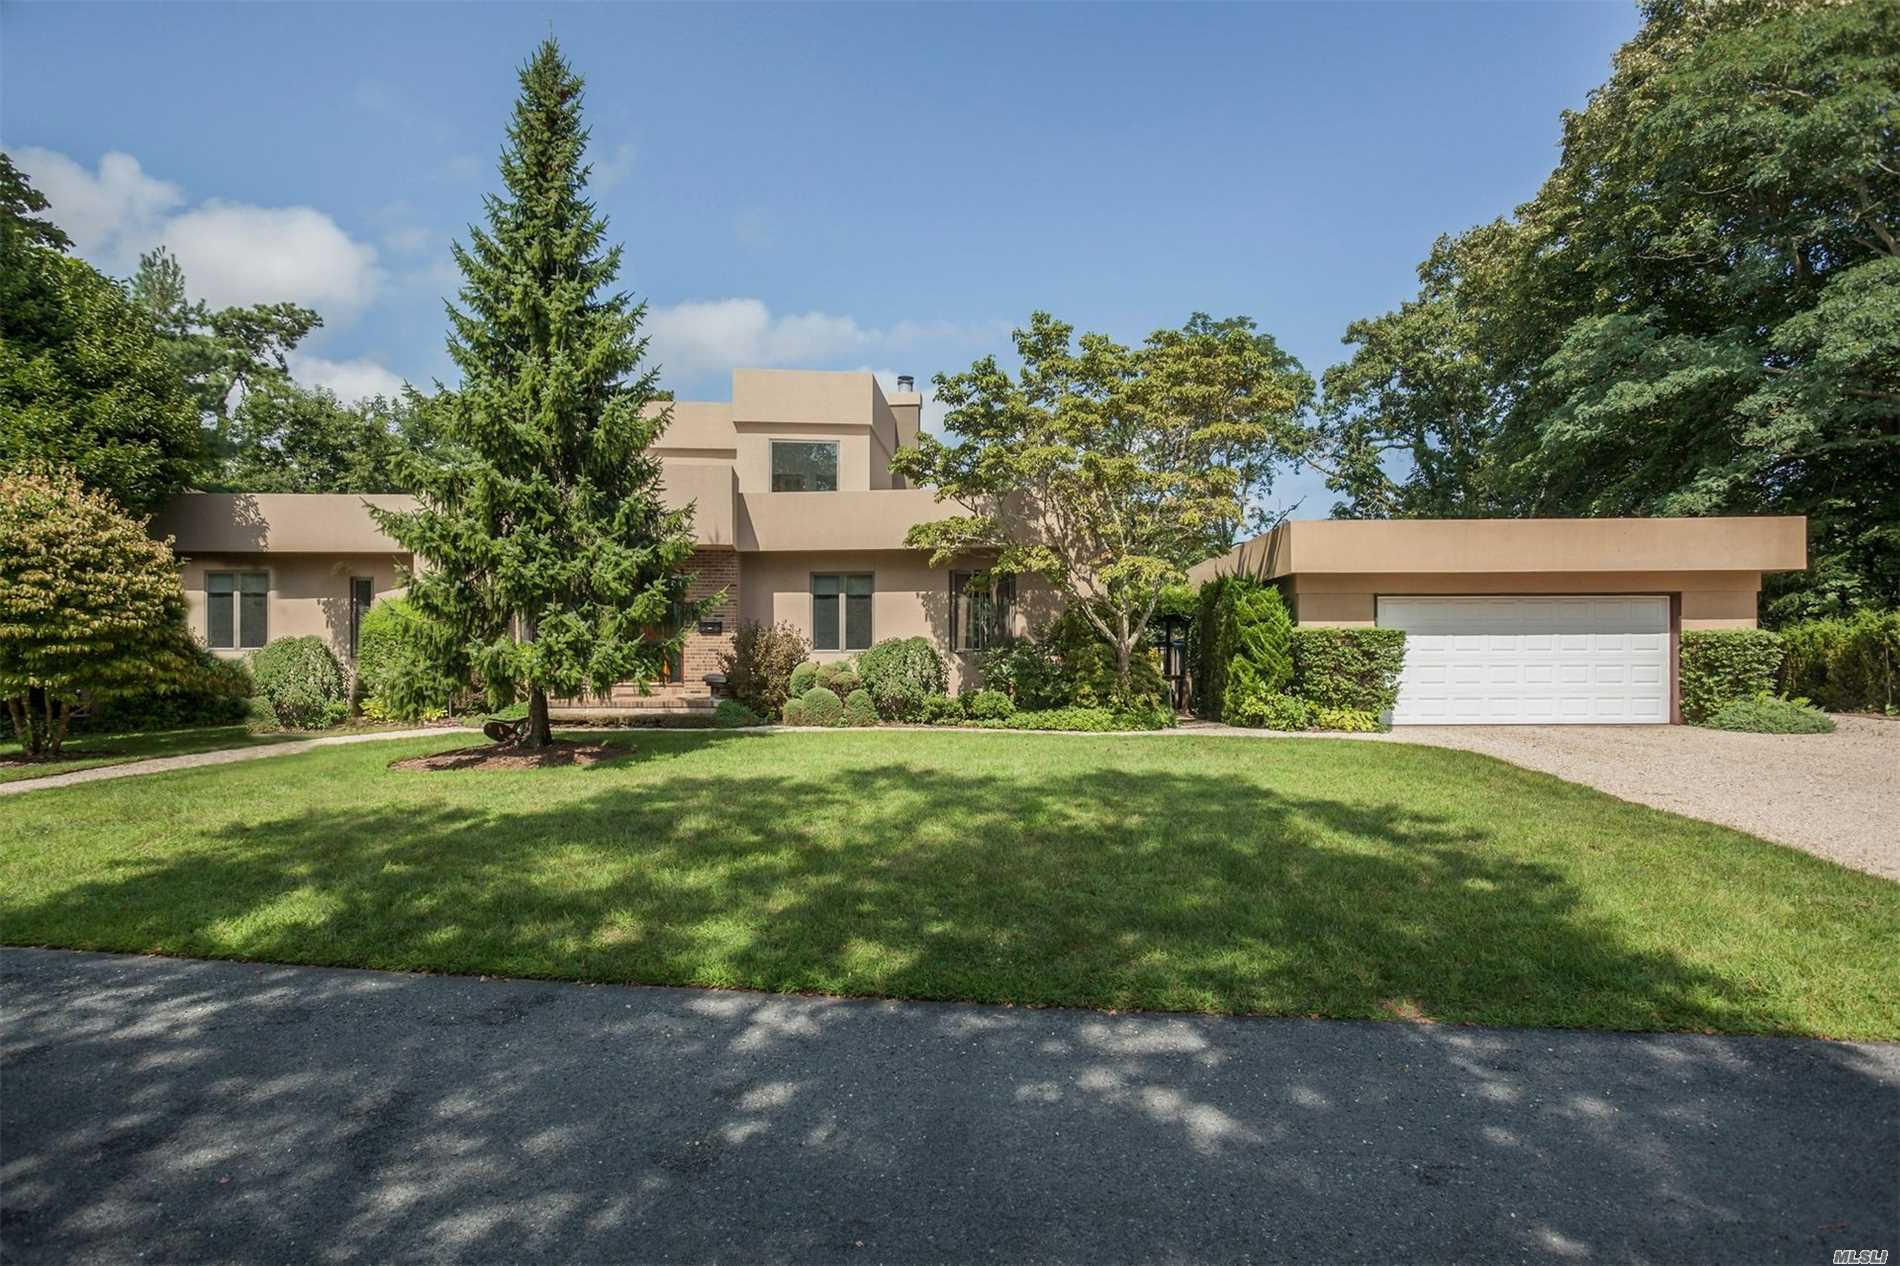 Photo of home for sale at 7 Brookside Ave, Bellport Village NY